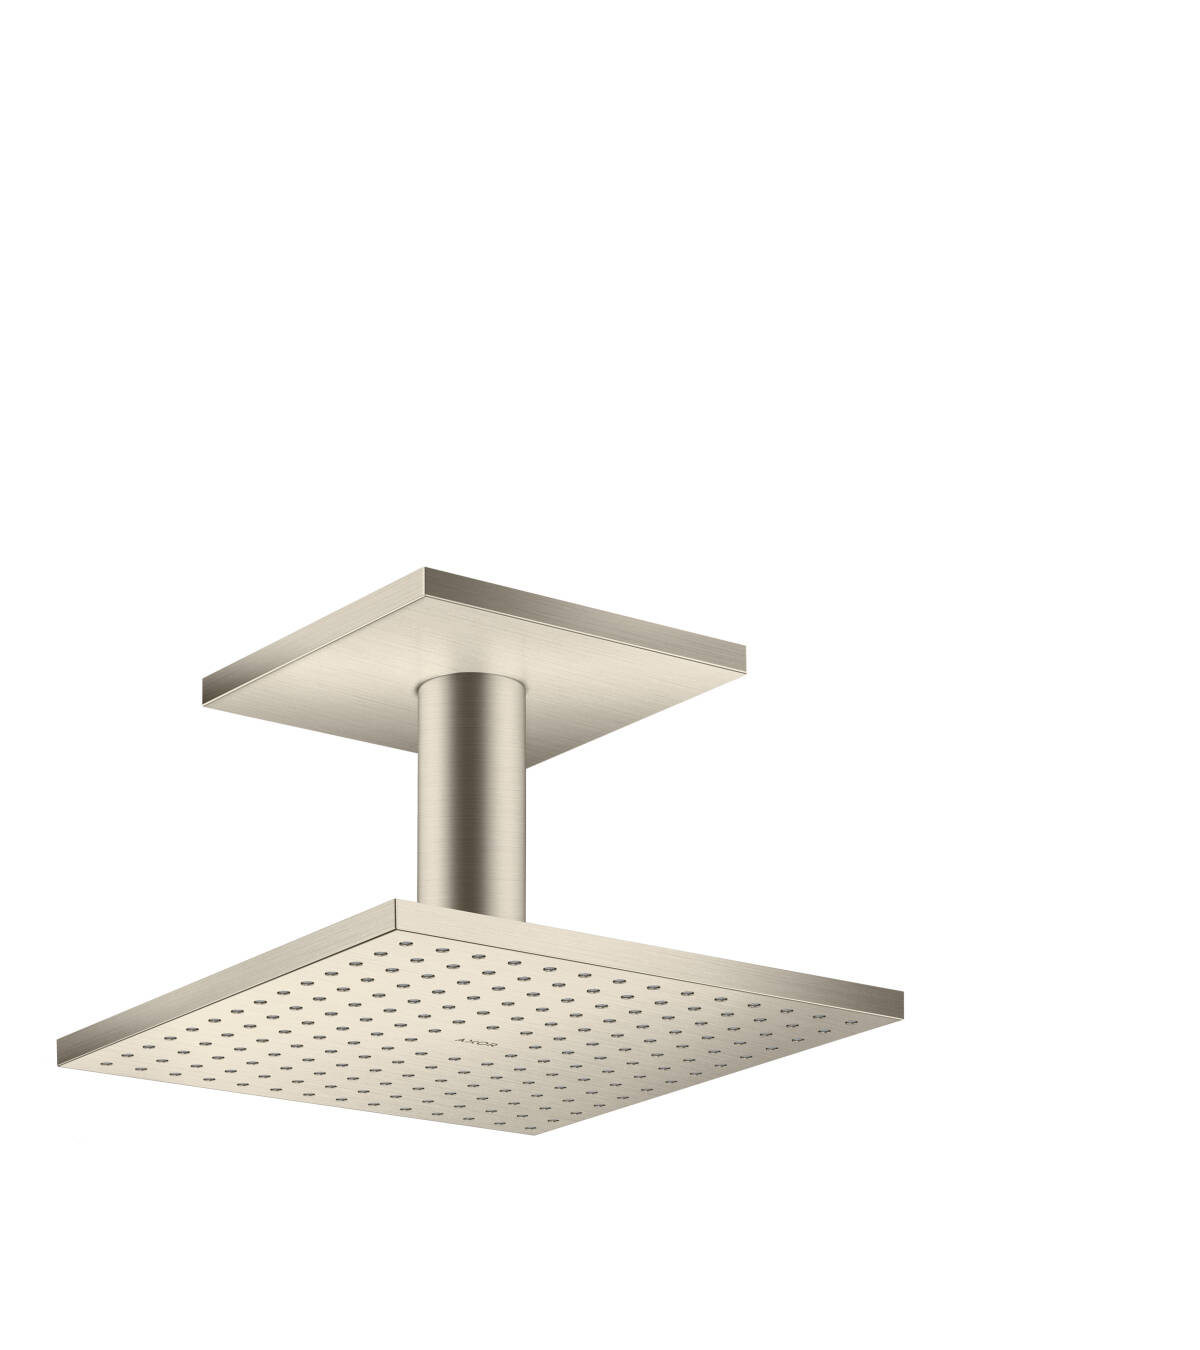 Overhead shower 250/250 1jet with ceiling connection, Brushed Nickel, 35308820